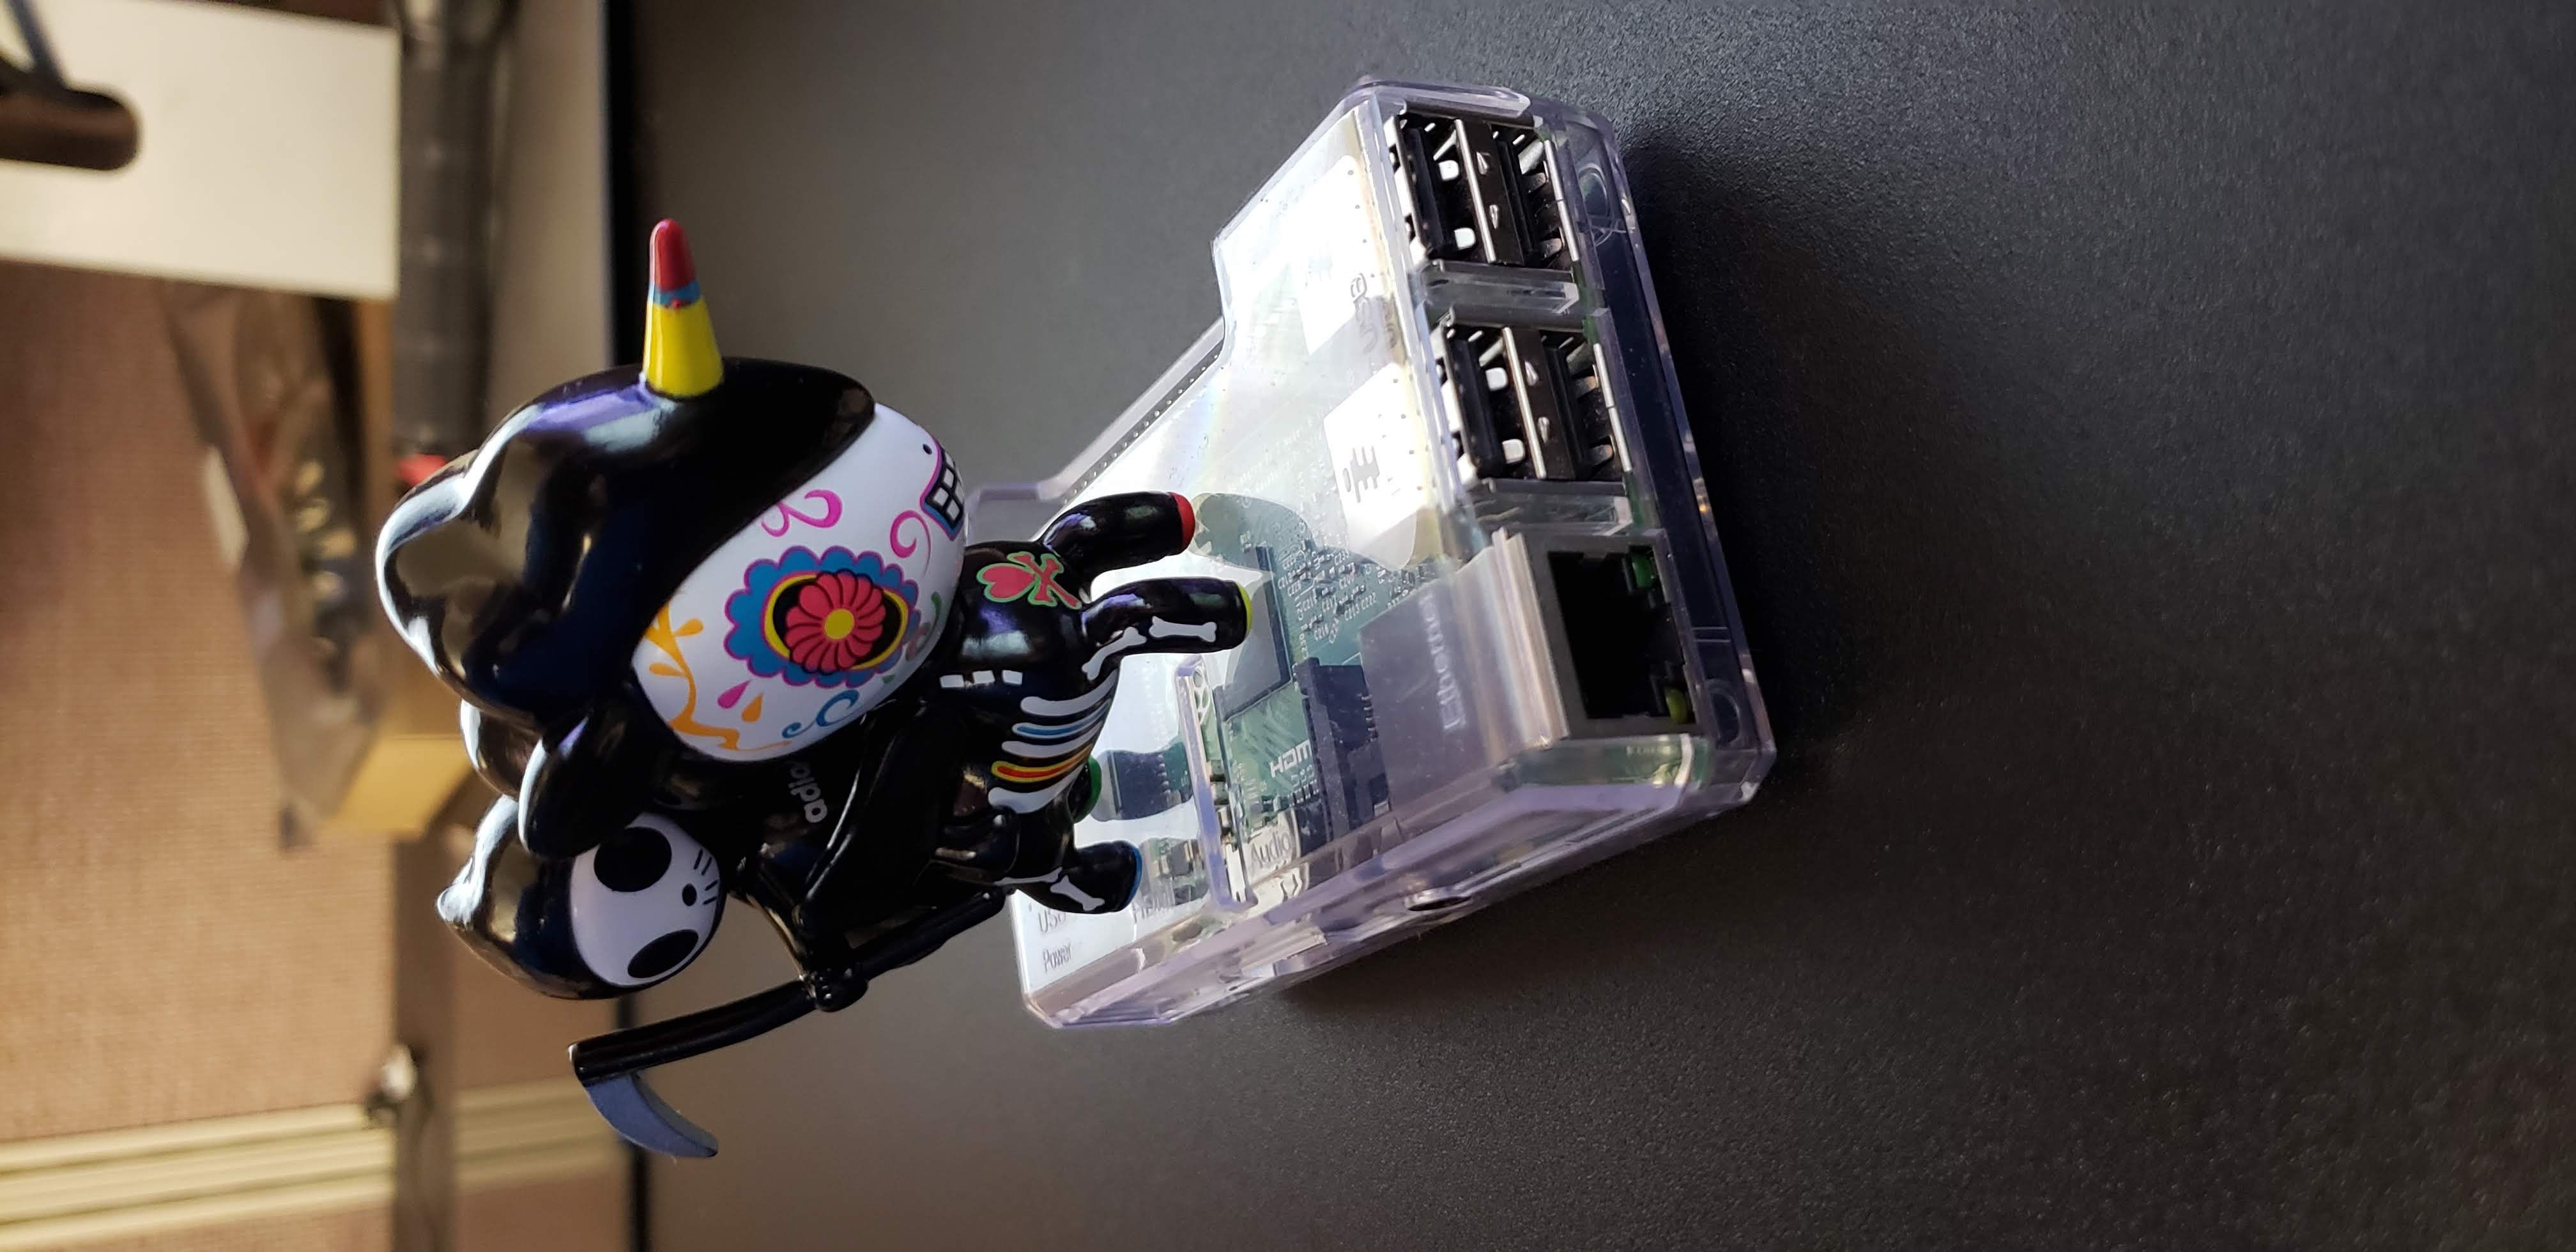 The one Raspberry Pi Project every House Needs!